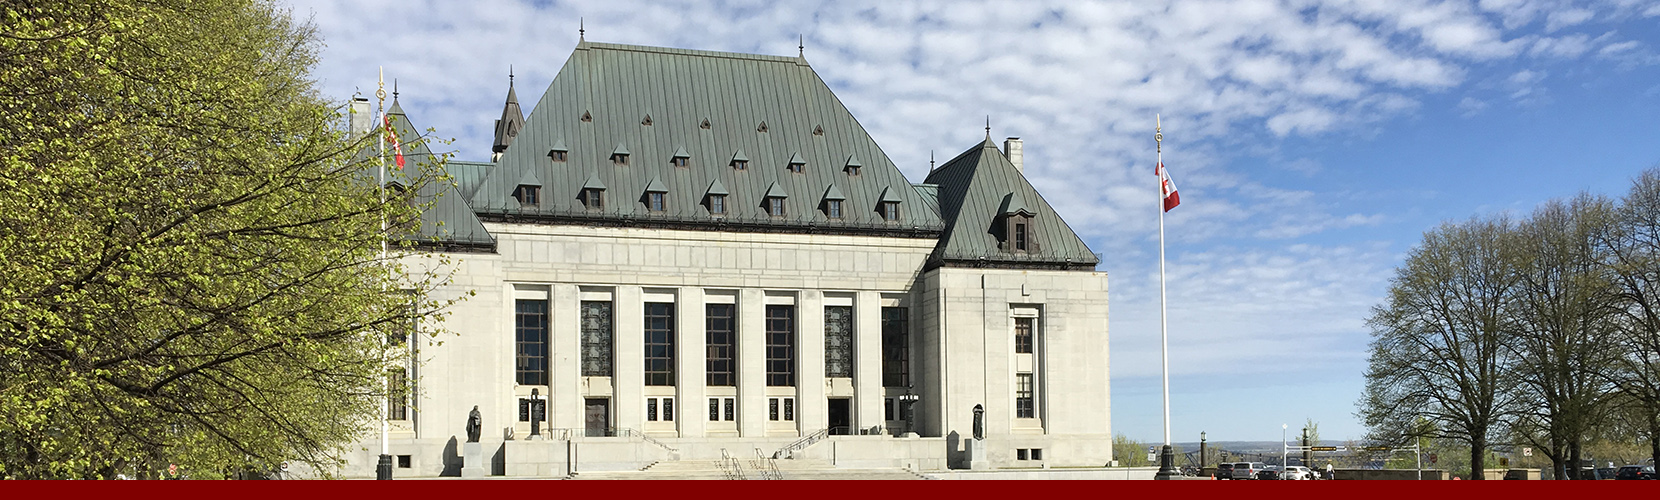 The American blockchain investor challenged the judgment in the Supreme Court of Canada which last week threw it out.